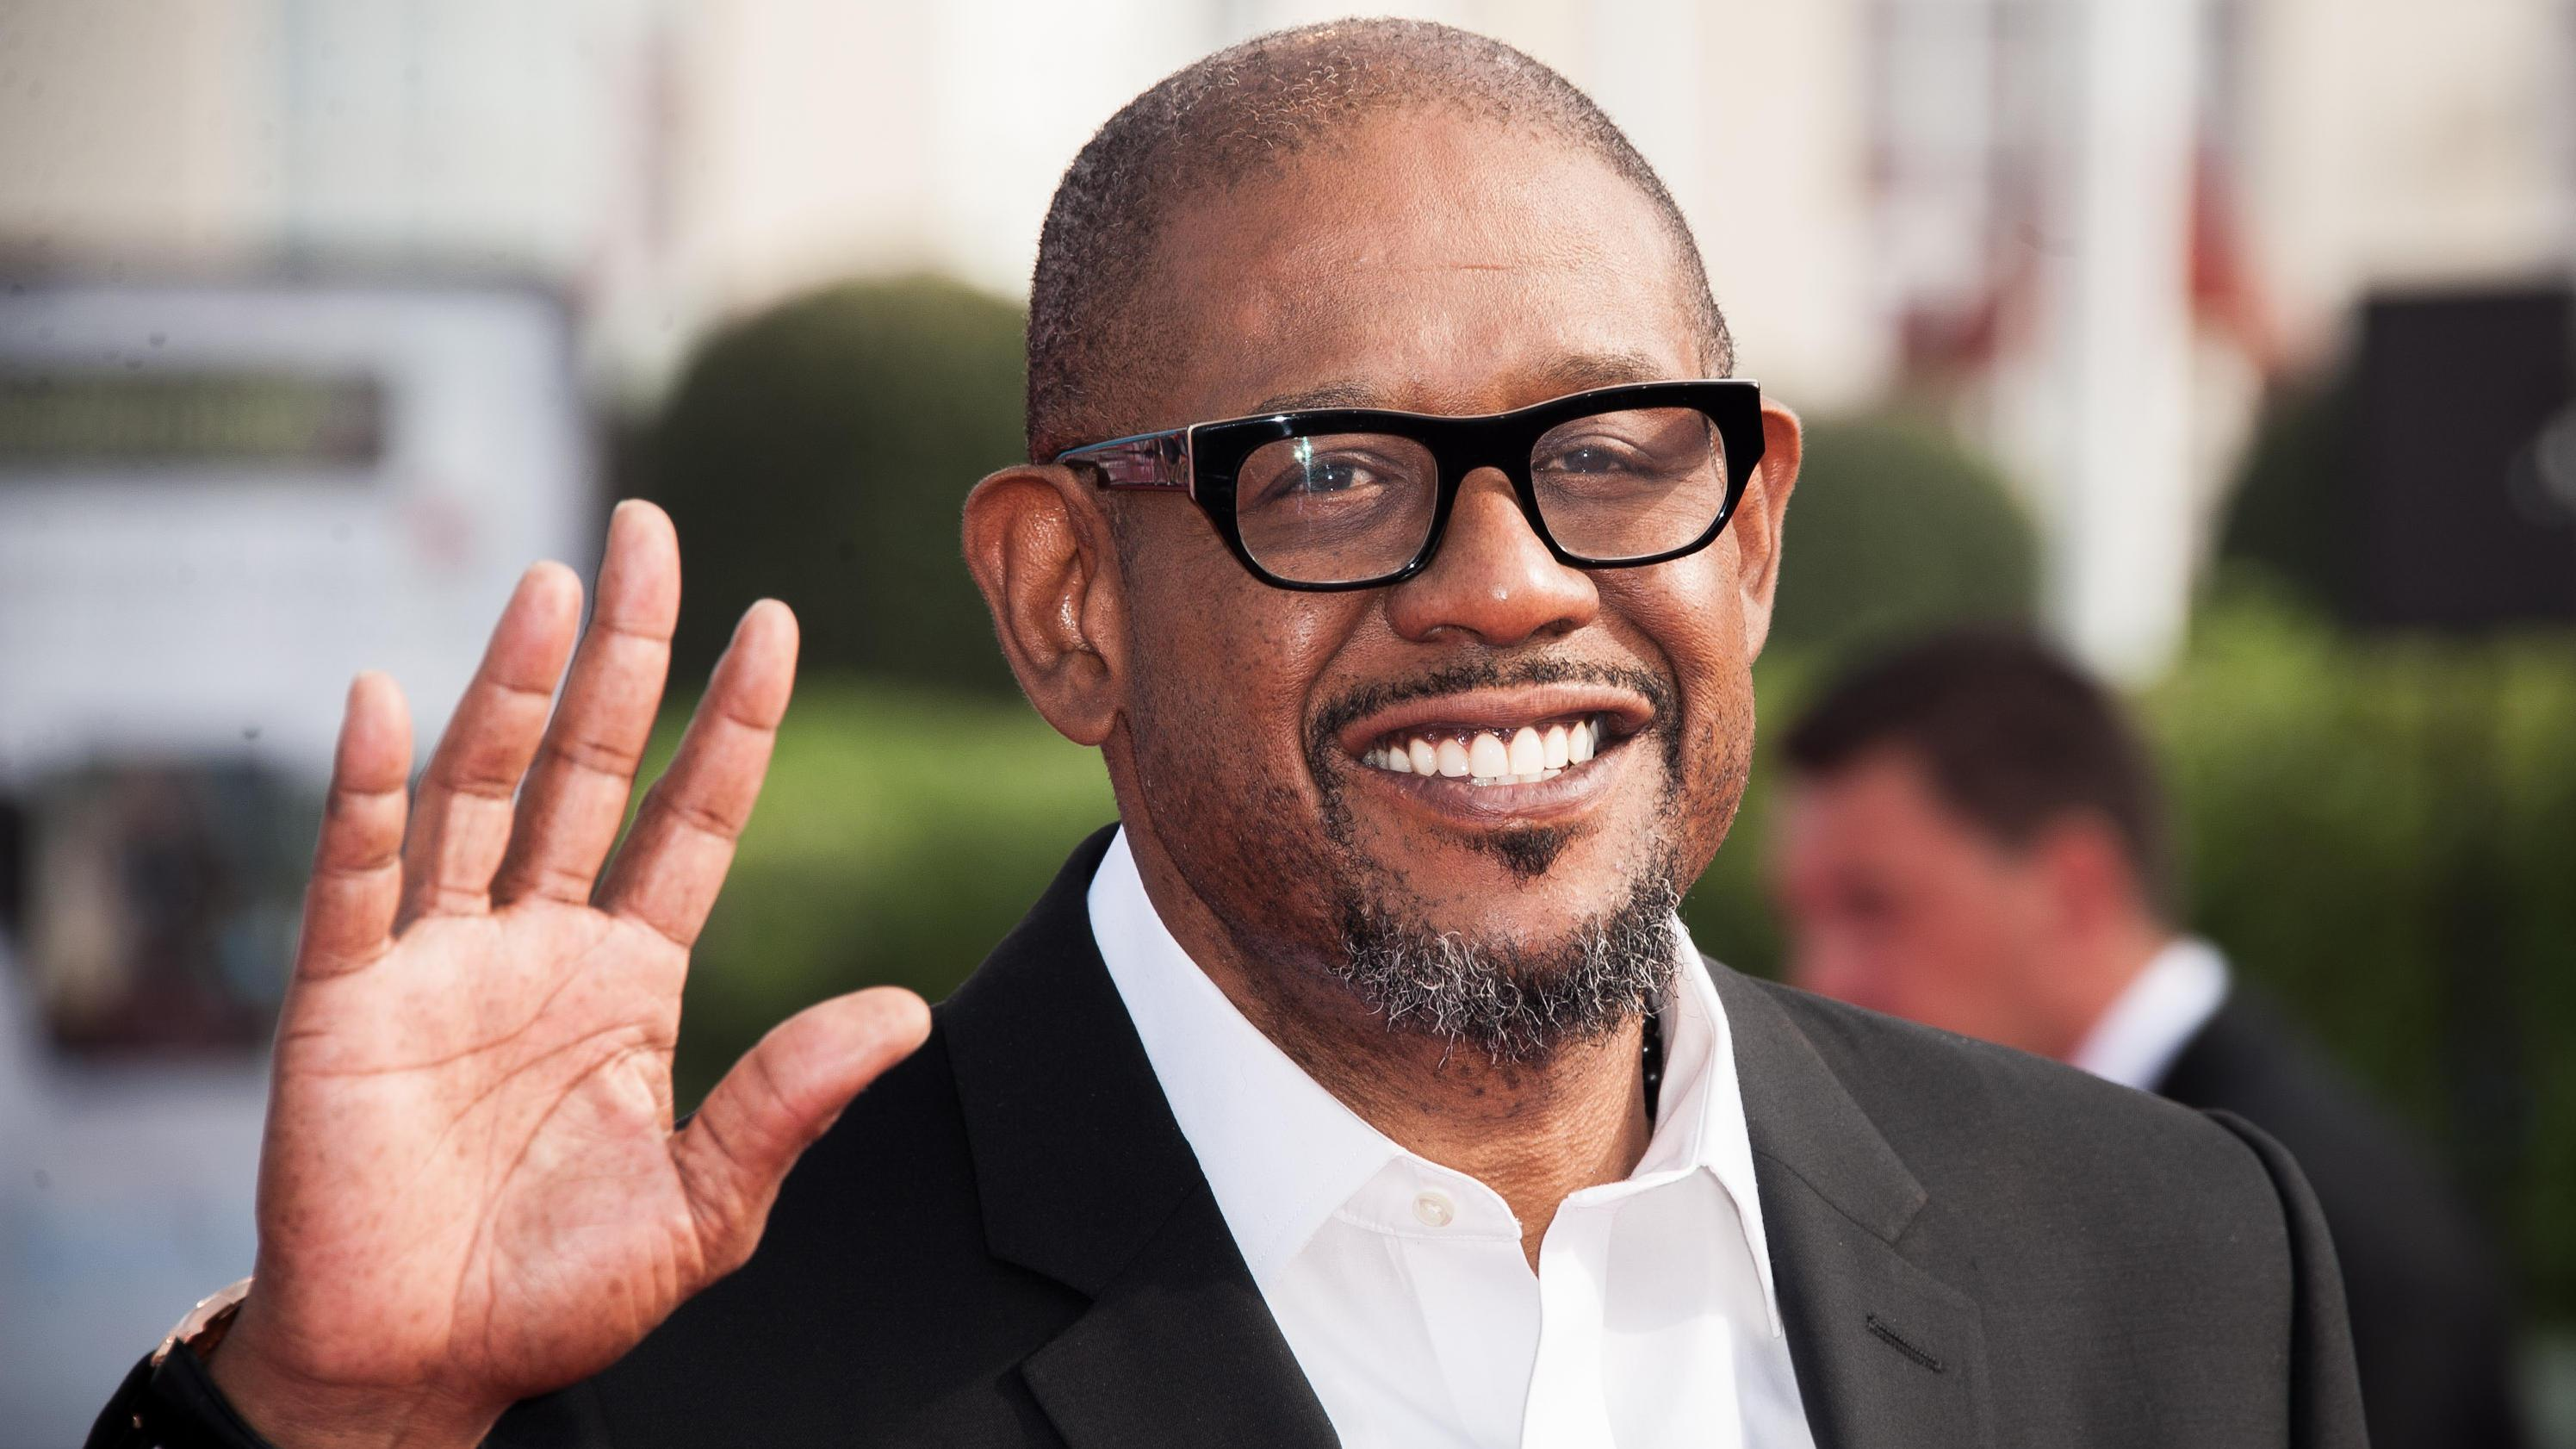 Forest Whitaker joins 'Empire' cast this fall - DefenderNetwork.com